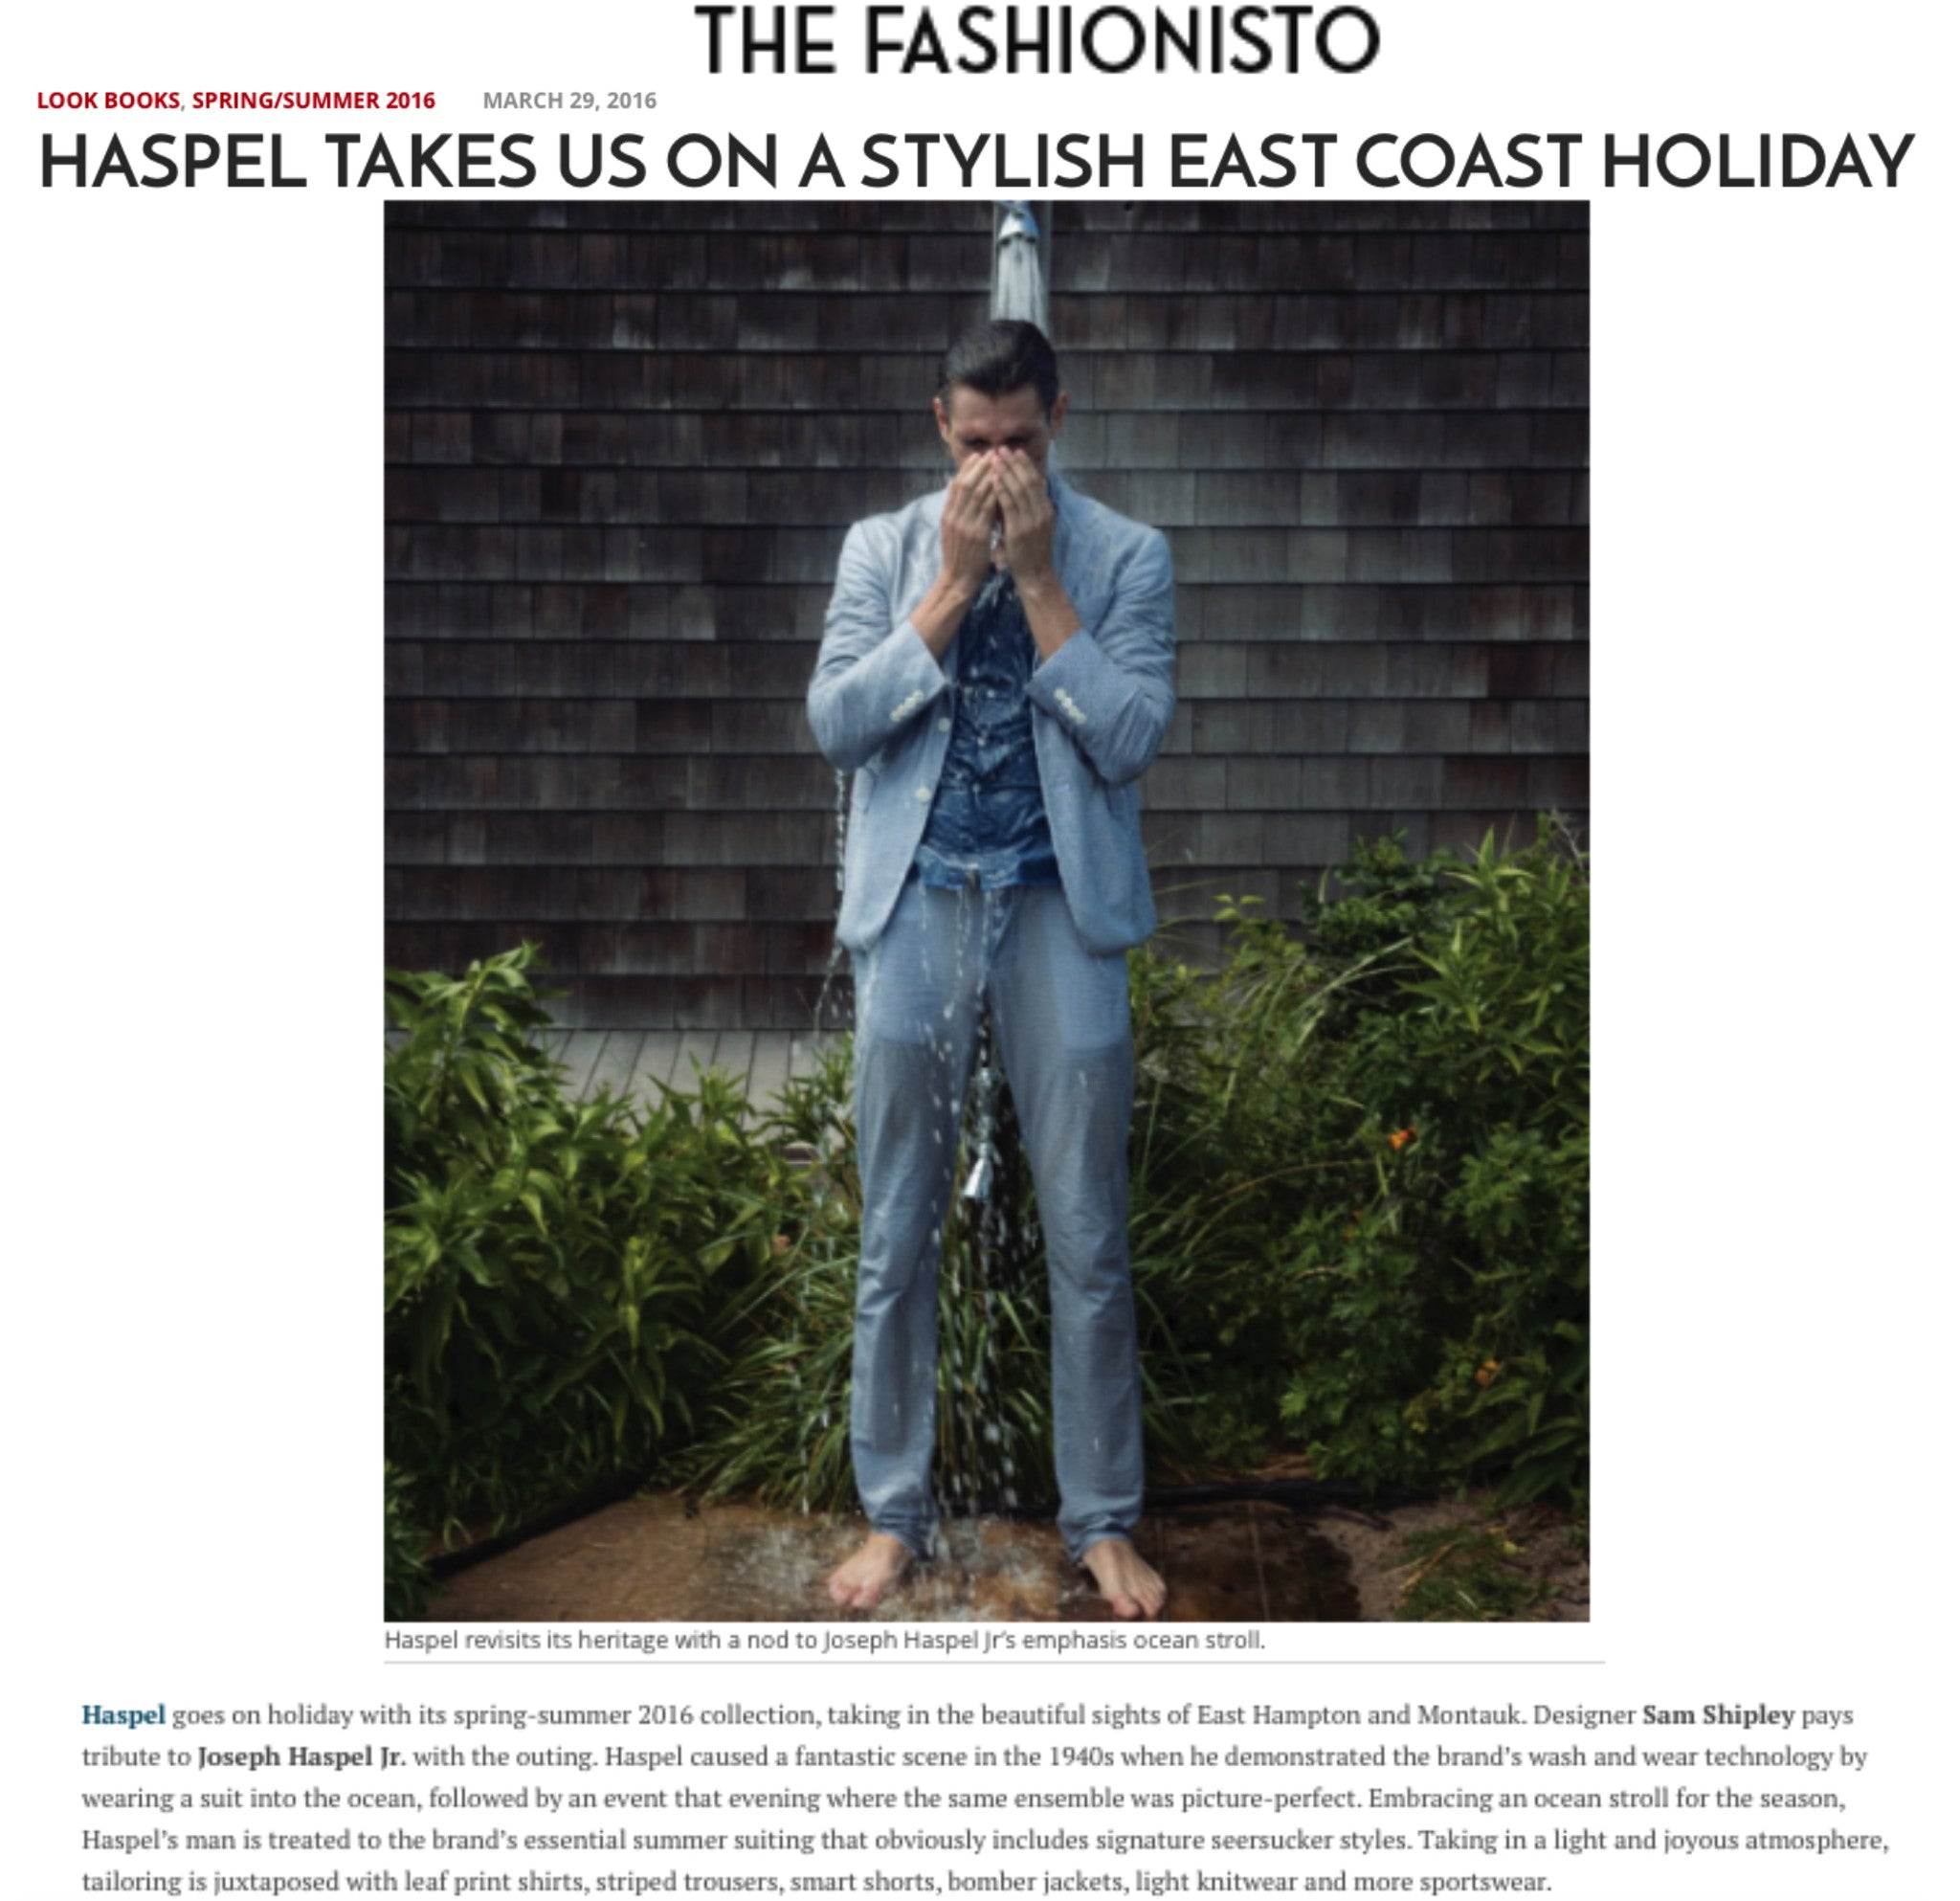 THEFASHIONISTO.COM - MARCH 2016